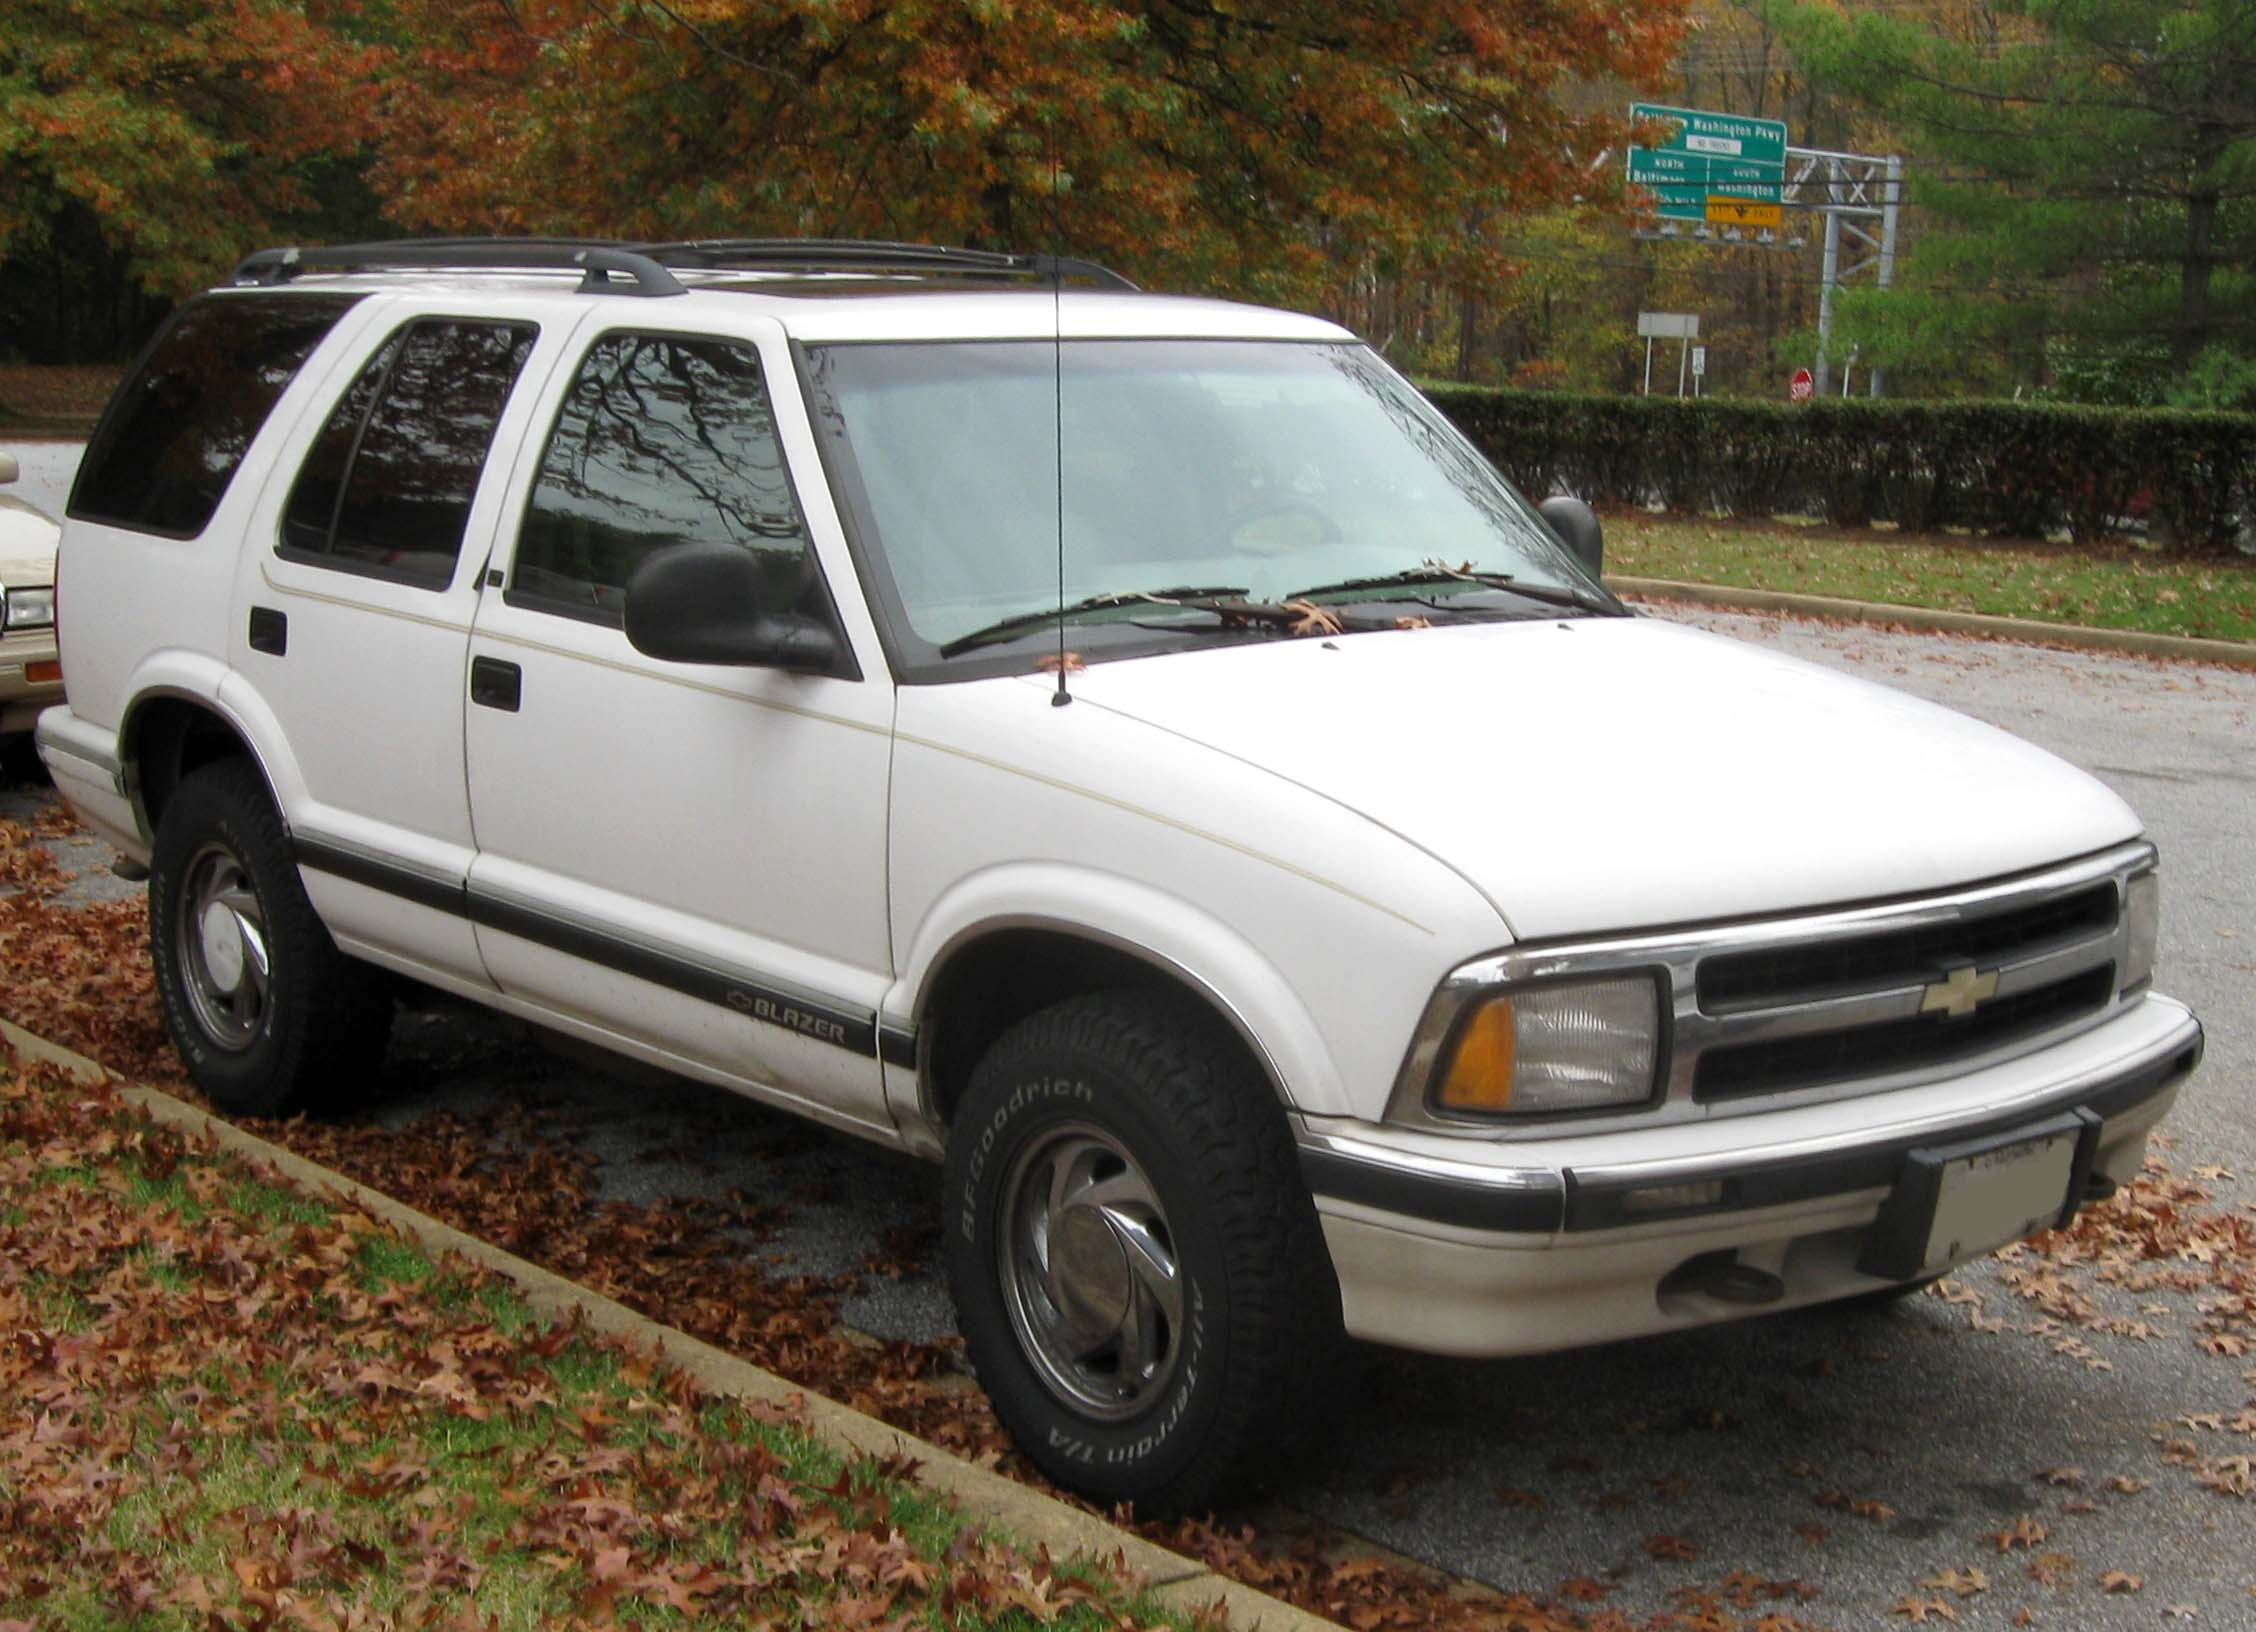 File:Chevrolet S-10 Blazer -- 10-30-2009.jpg - Wikimedia Commons on 96 s10 engine, s10 v8 engine swap, s10 v6 engine, 1999 ford taurus 3.0 engine, s10 2.2l engine,